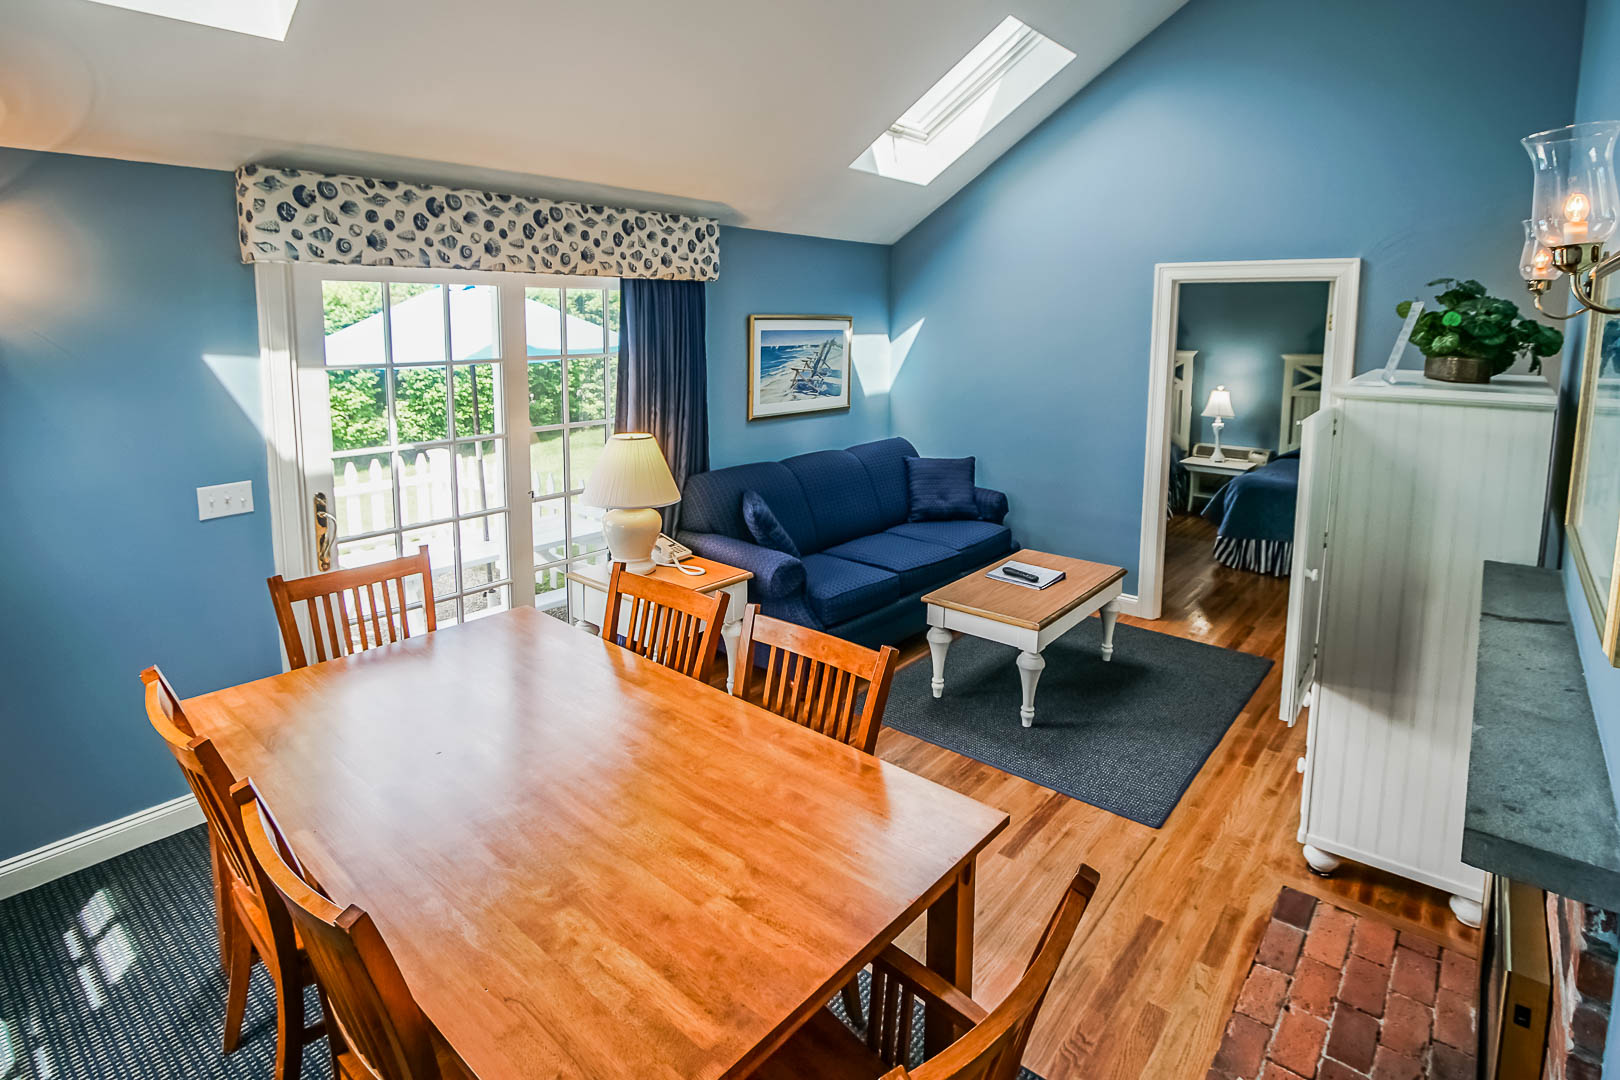 An expansive 1 bedroom with dining and living room area at VRI's Beachside Village Resort in Massachusetts.